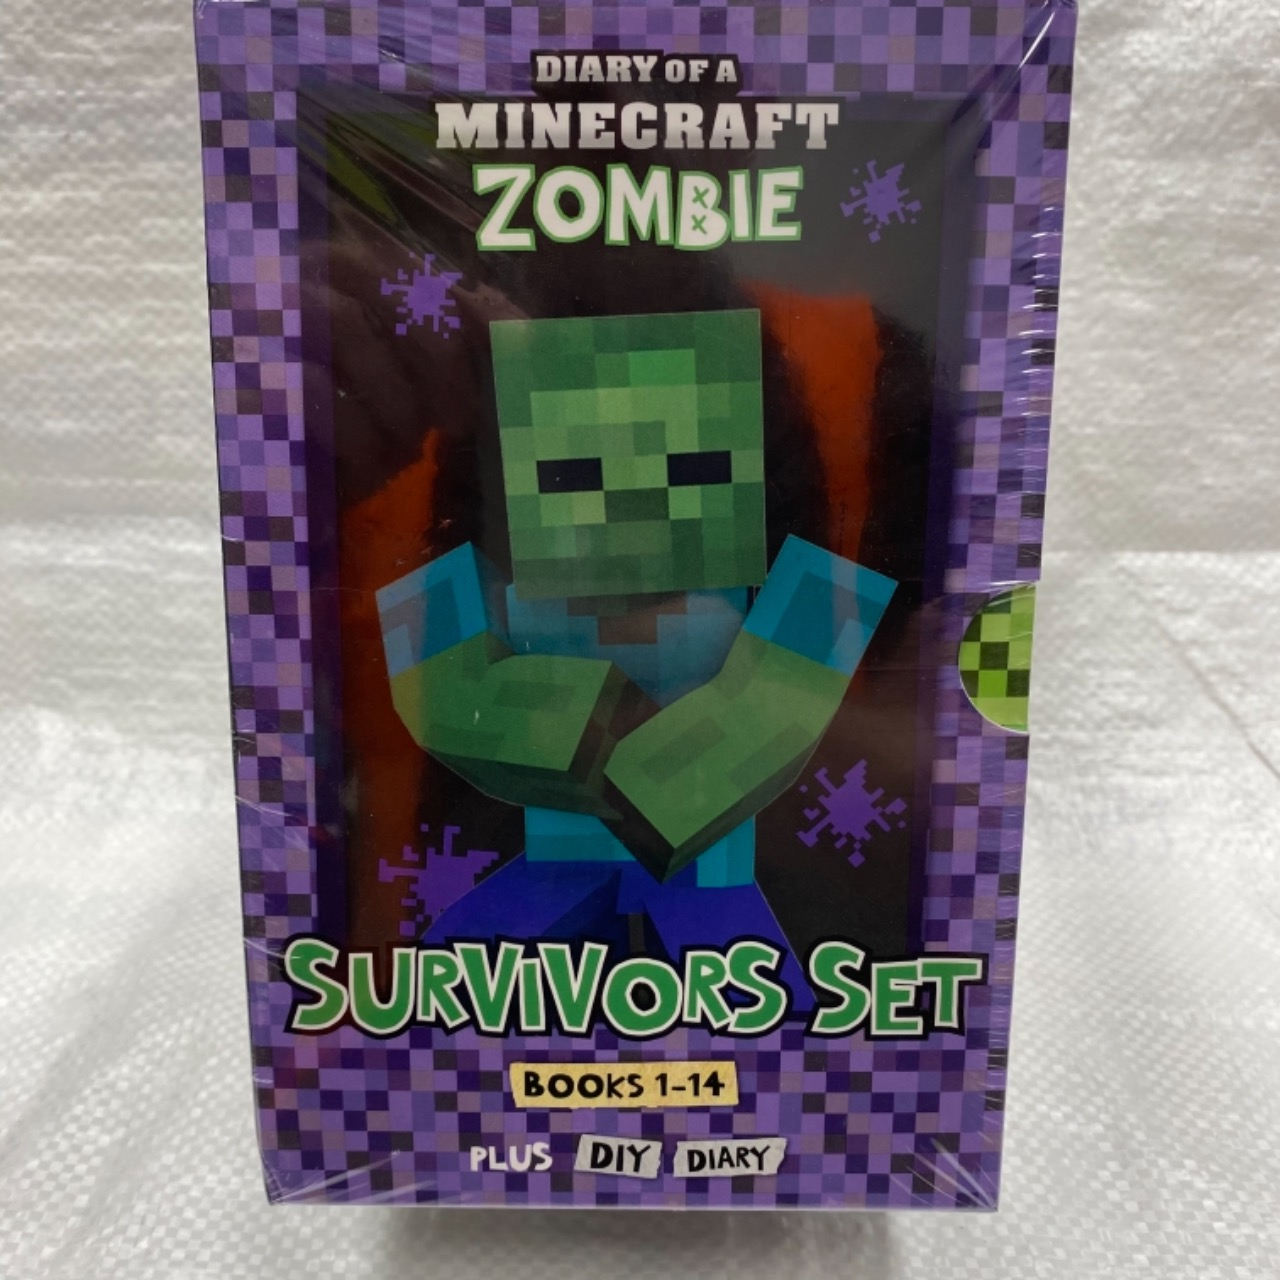 Diary of a Minecraft Zombie: Survivors Books 1-14 + DIY Diary Box Set - NEW Still Sealed